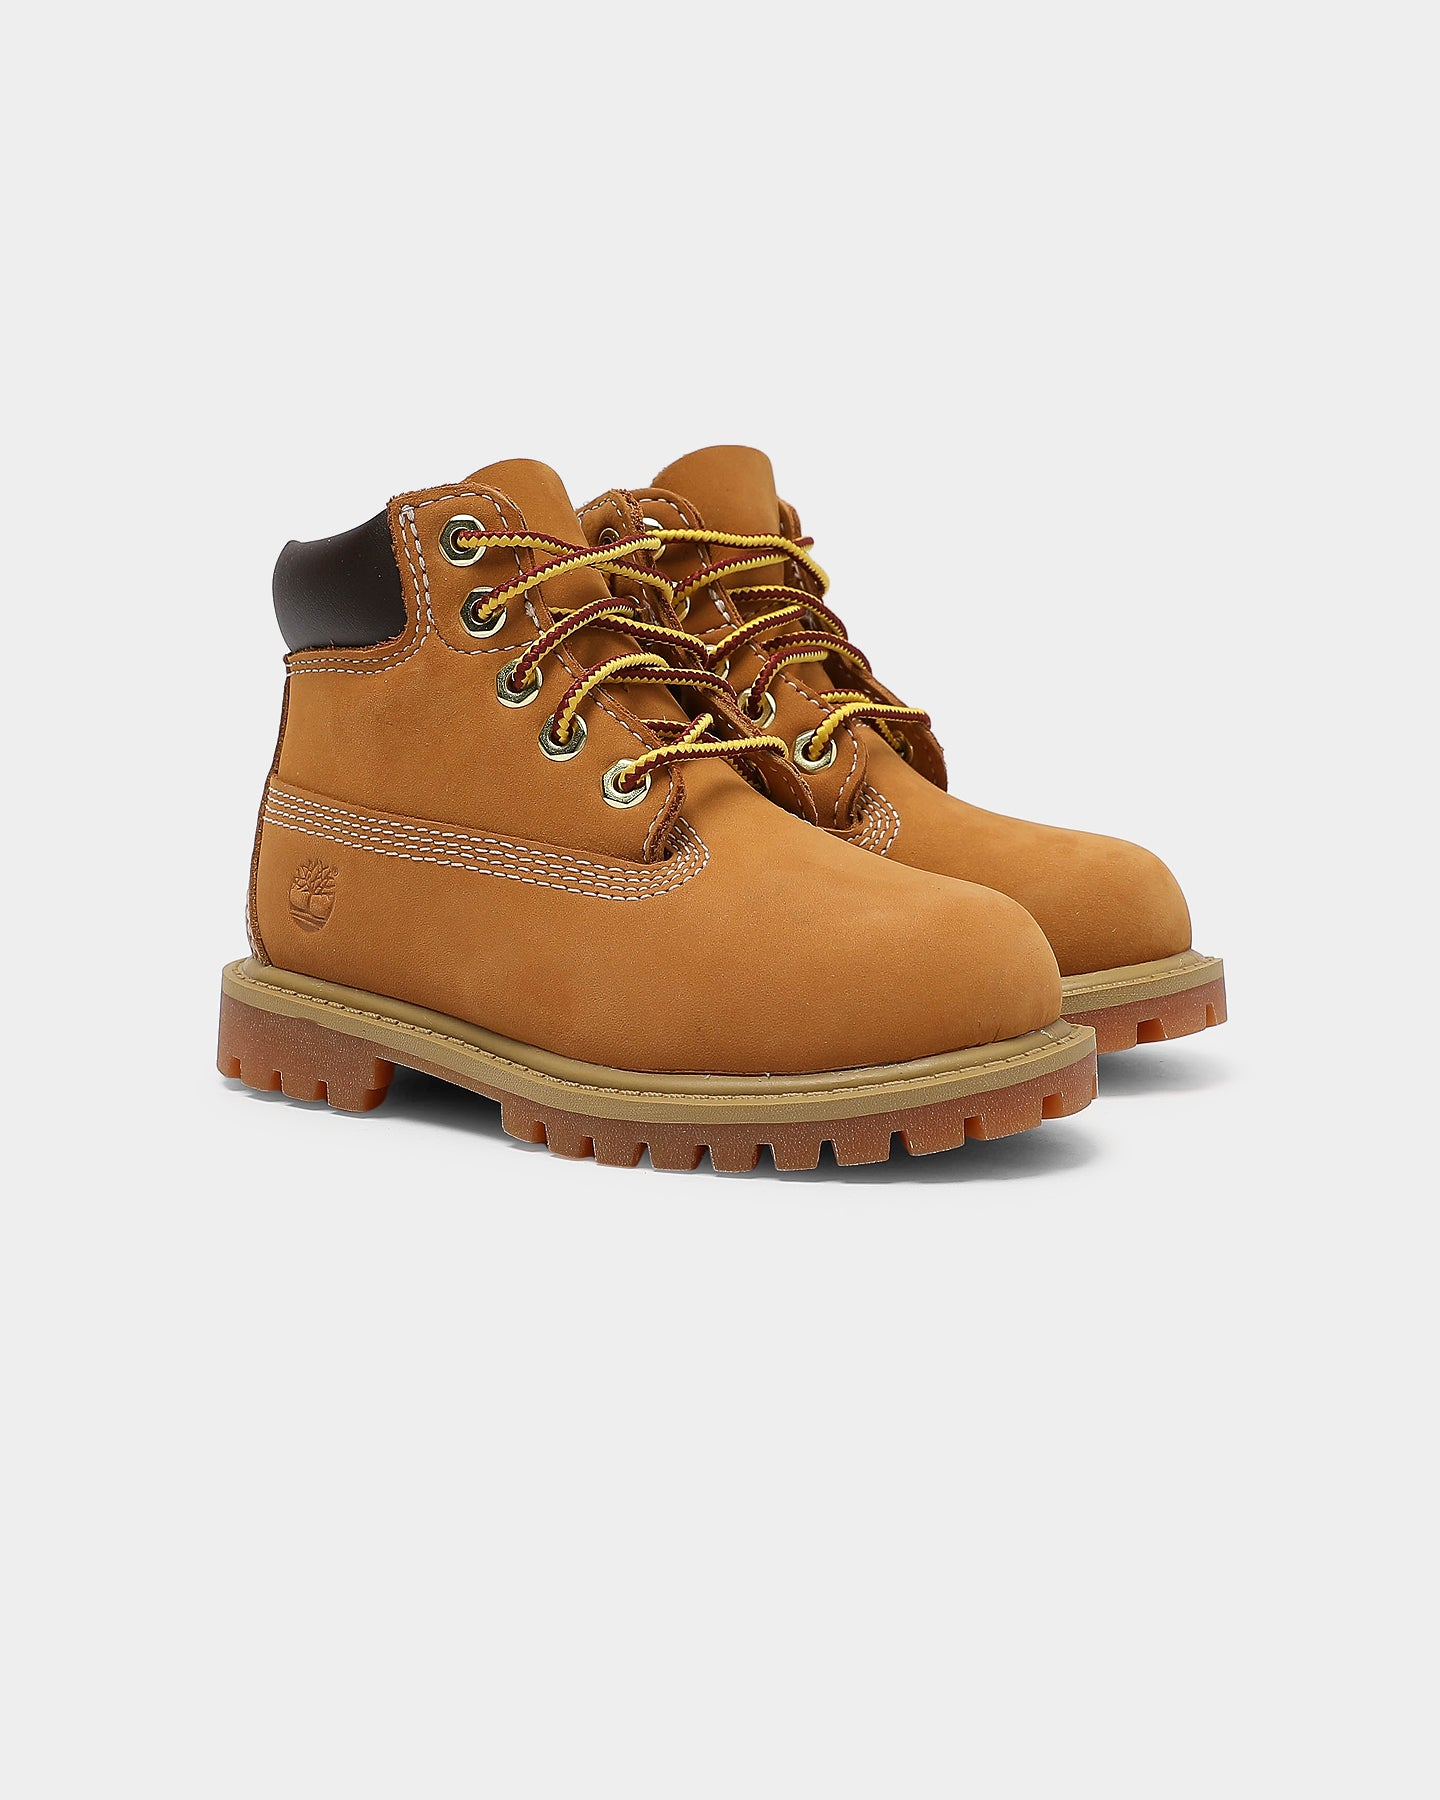 Timberland Boots Baby Toddler Size 5 Prem Classic Wheat